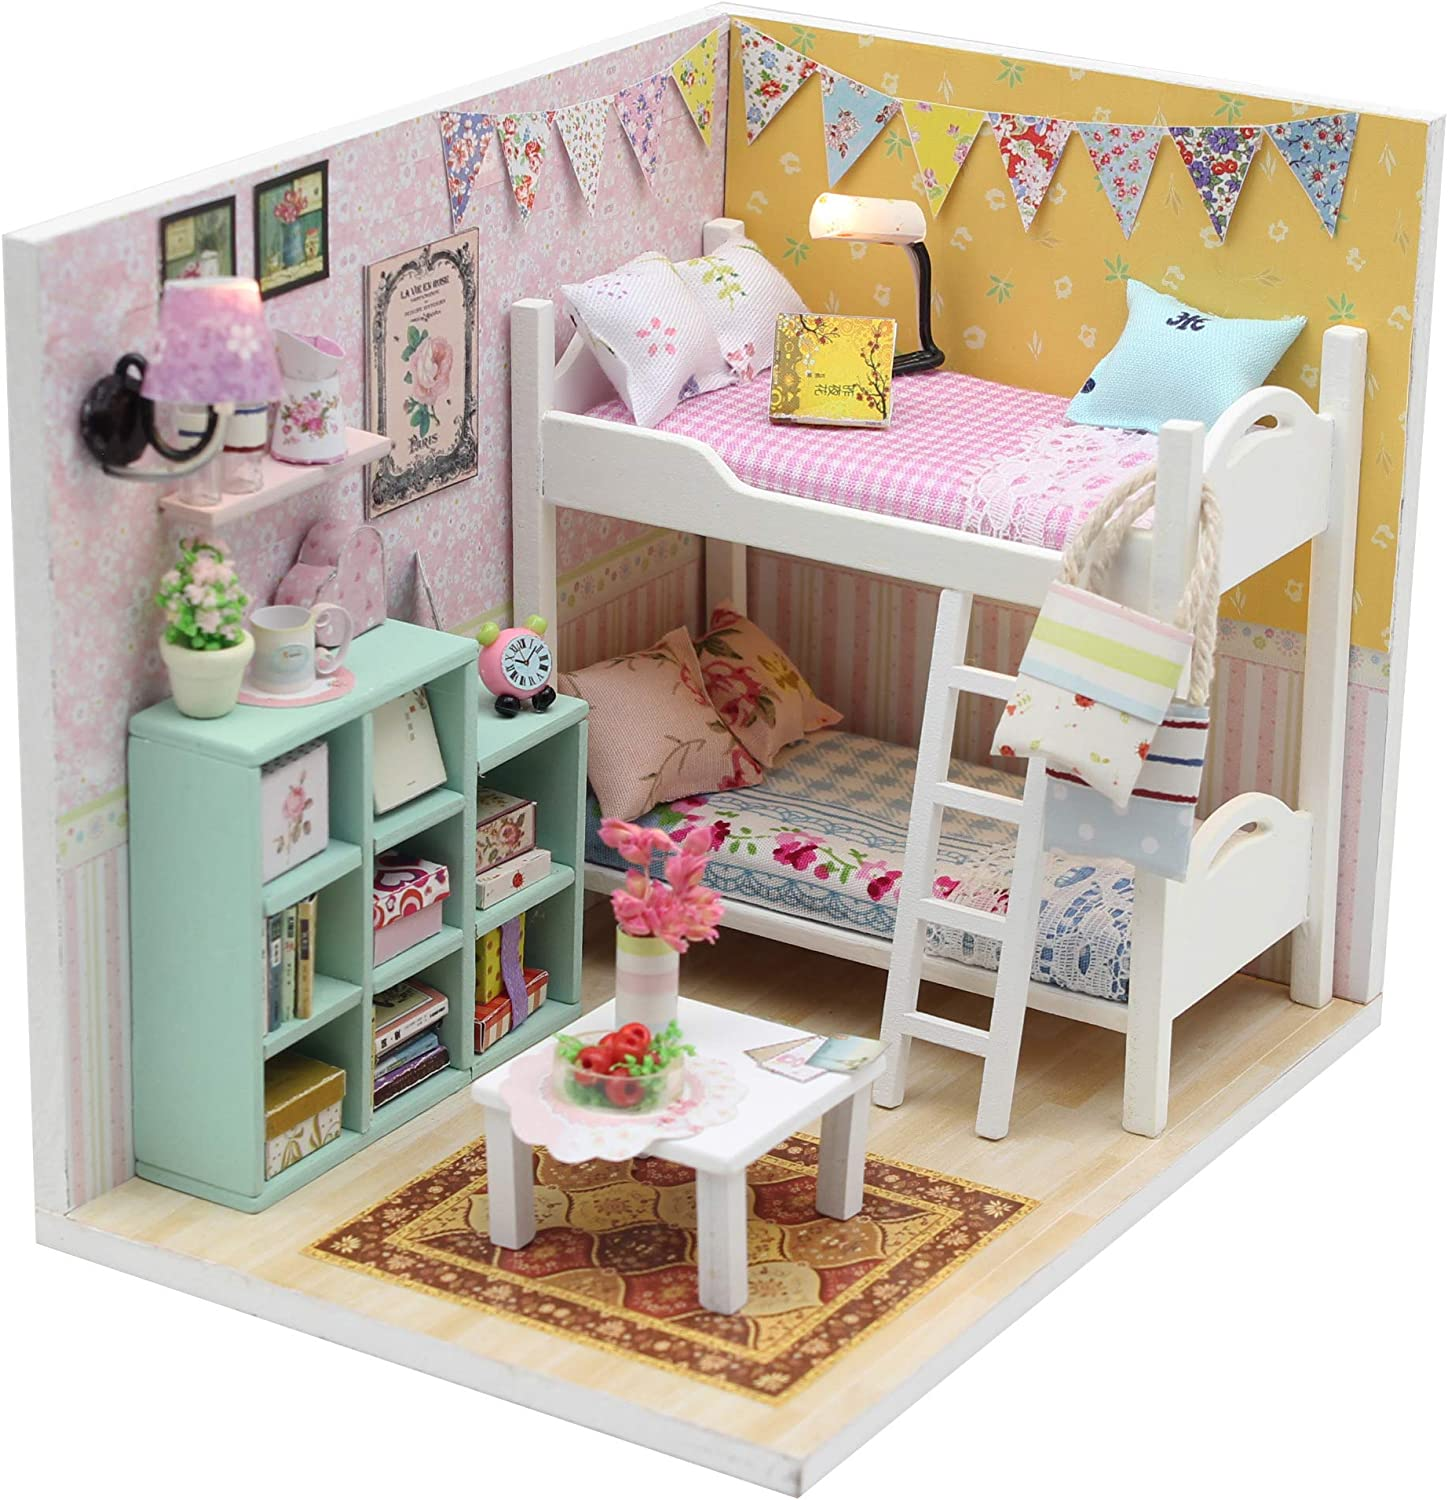 Kisoy Romantic and Cute Dollhouse Miniature DIY House Kit Creative Room Perfect DIY Gift for Friends, Lovers and Families (Cheryl's Room)